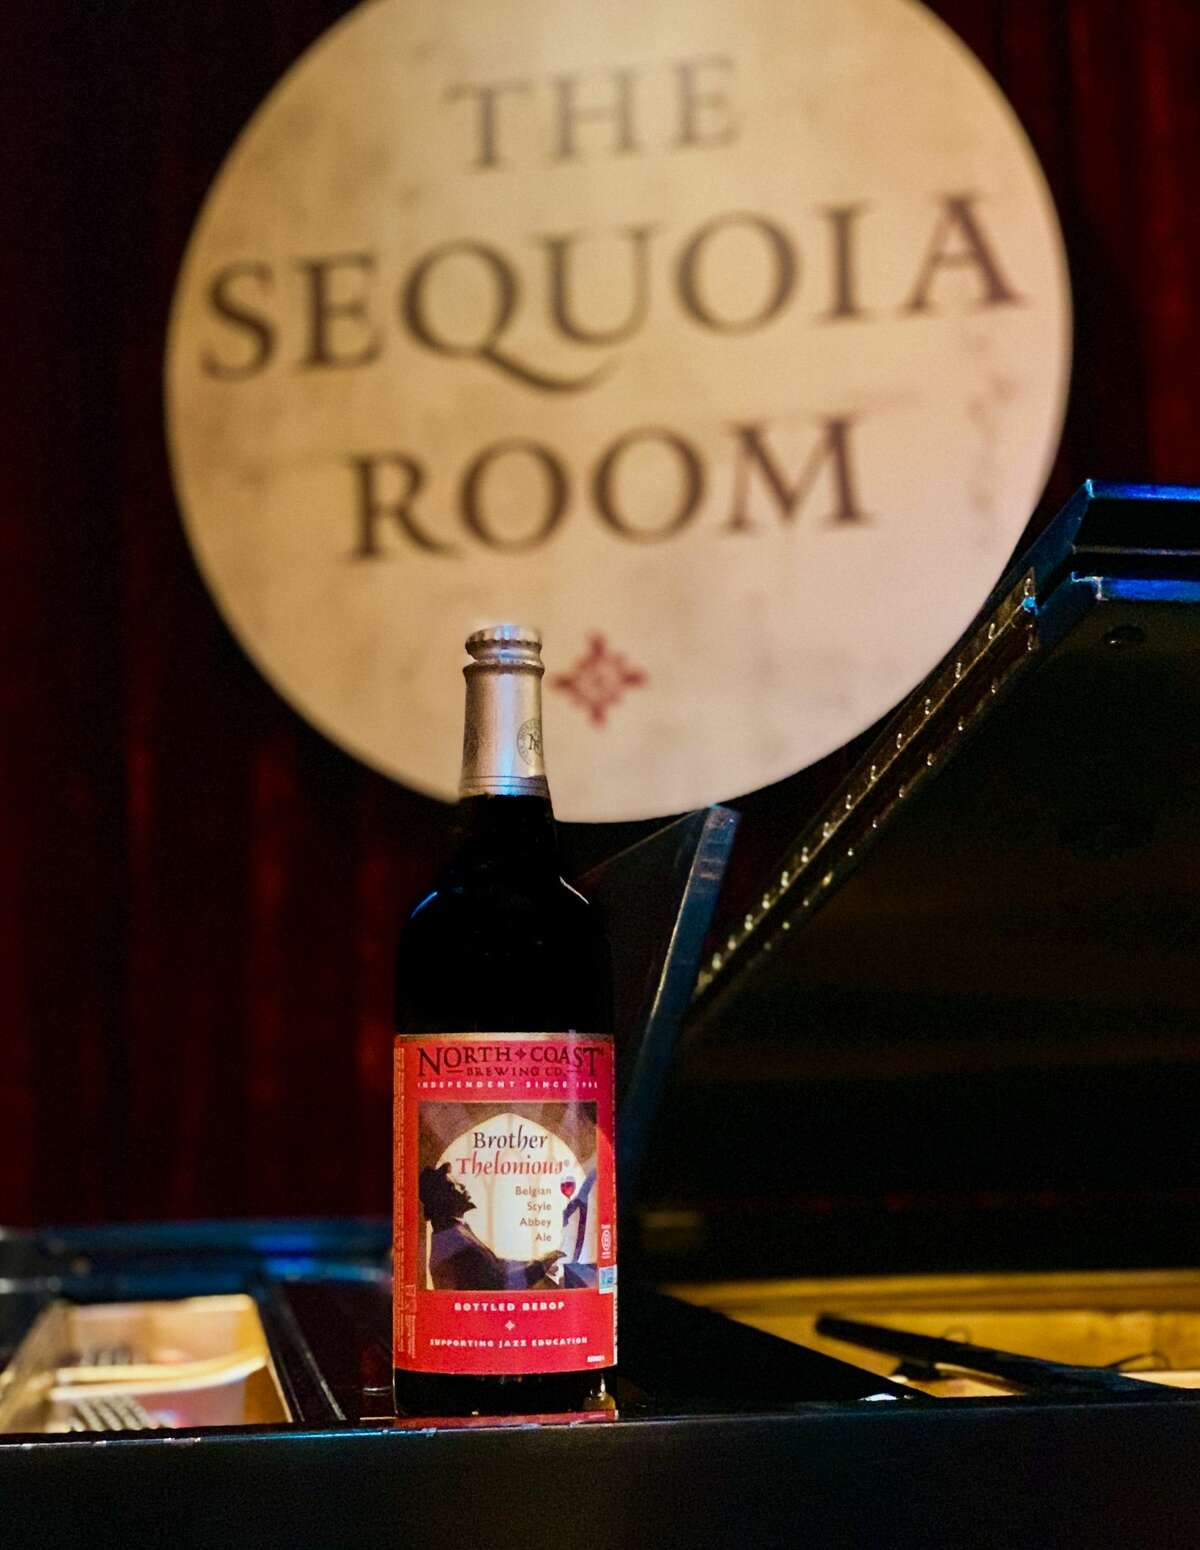 North Coast Brewing Company announced the re-release of their popular abbey ale, Brother Thelonious. The beer had been temporarily shelved during a legal battle with the Monk estate, but is now back in bars and bottle shops.